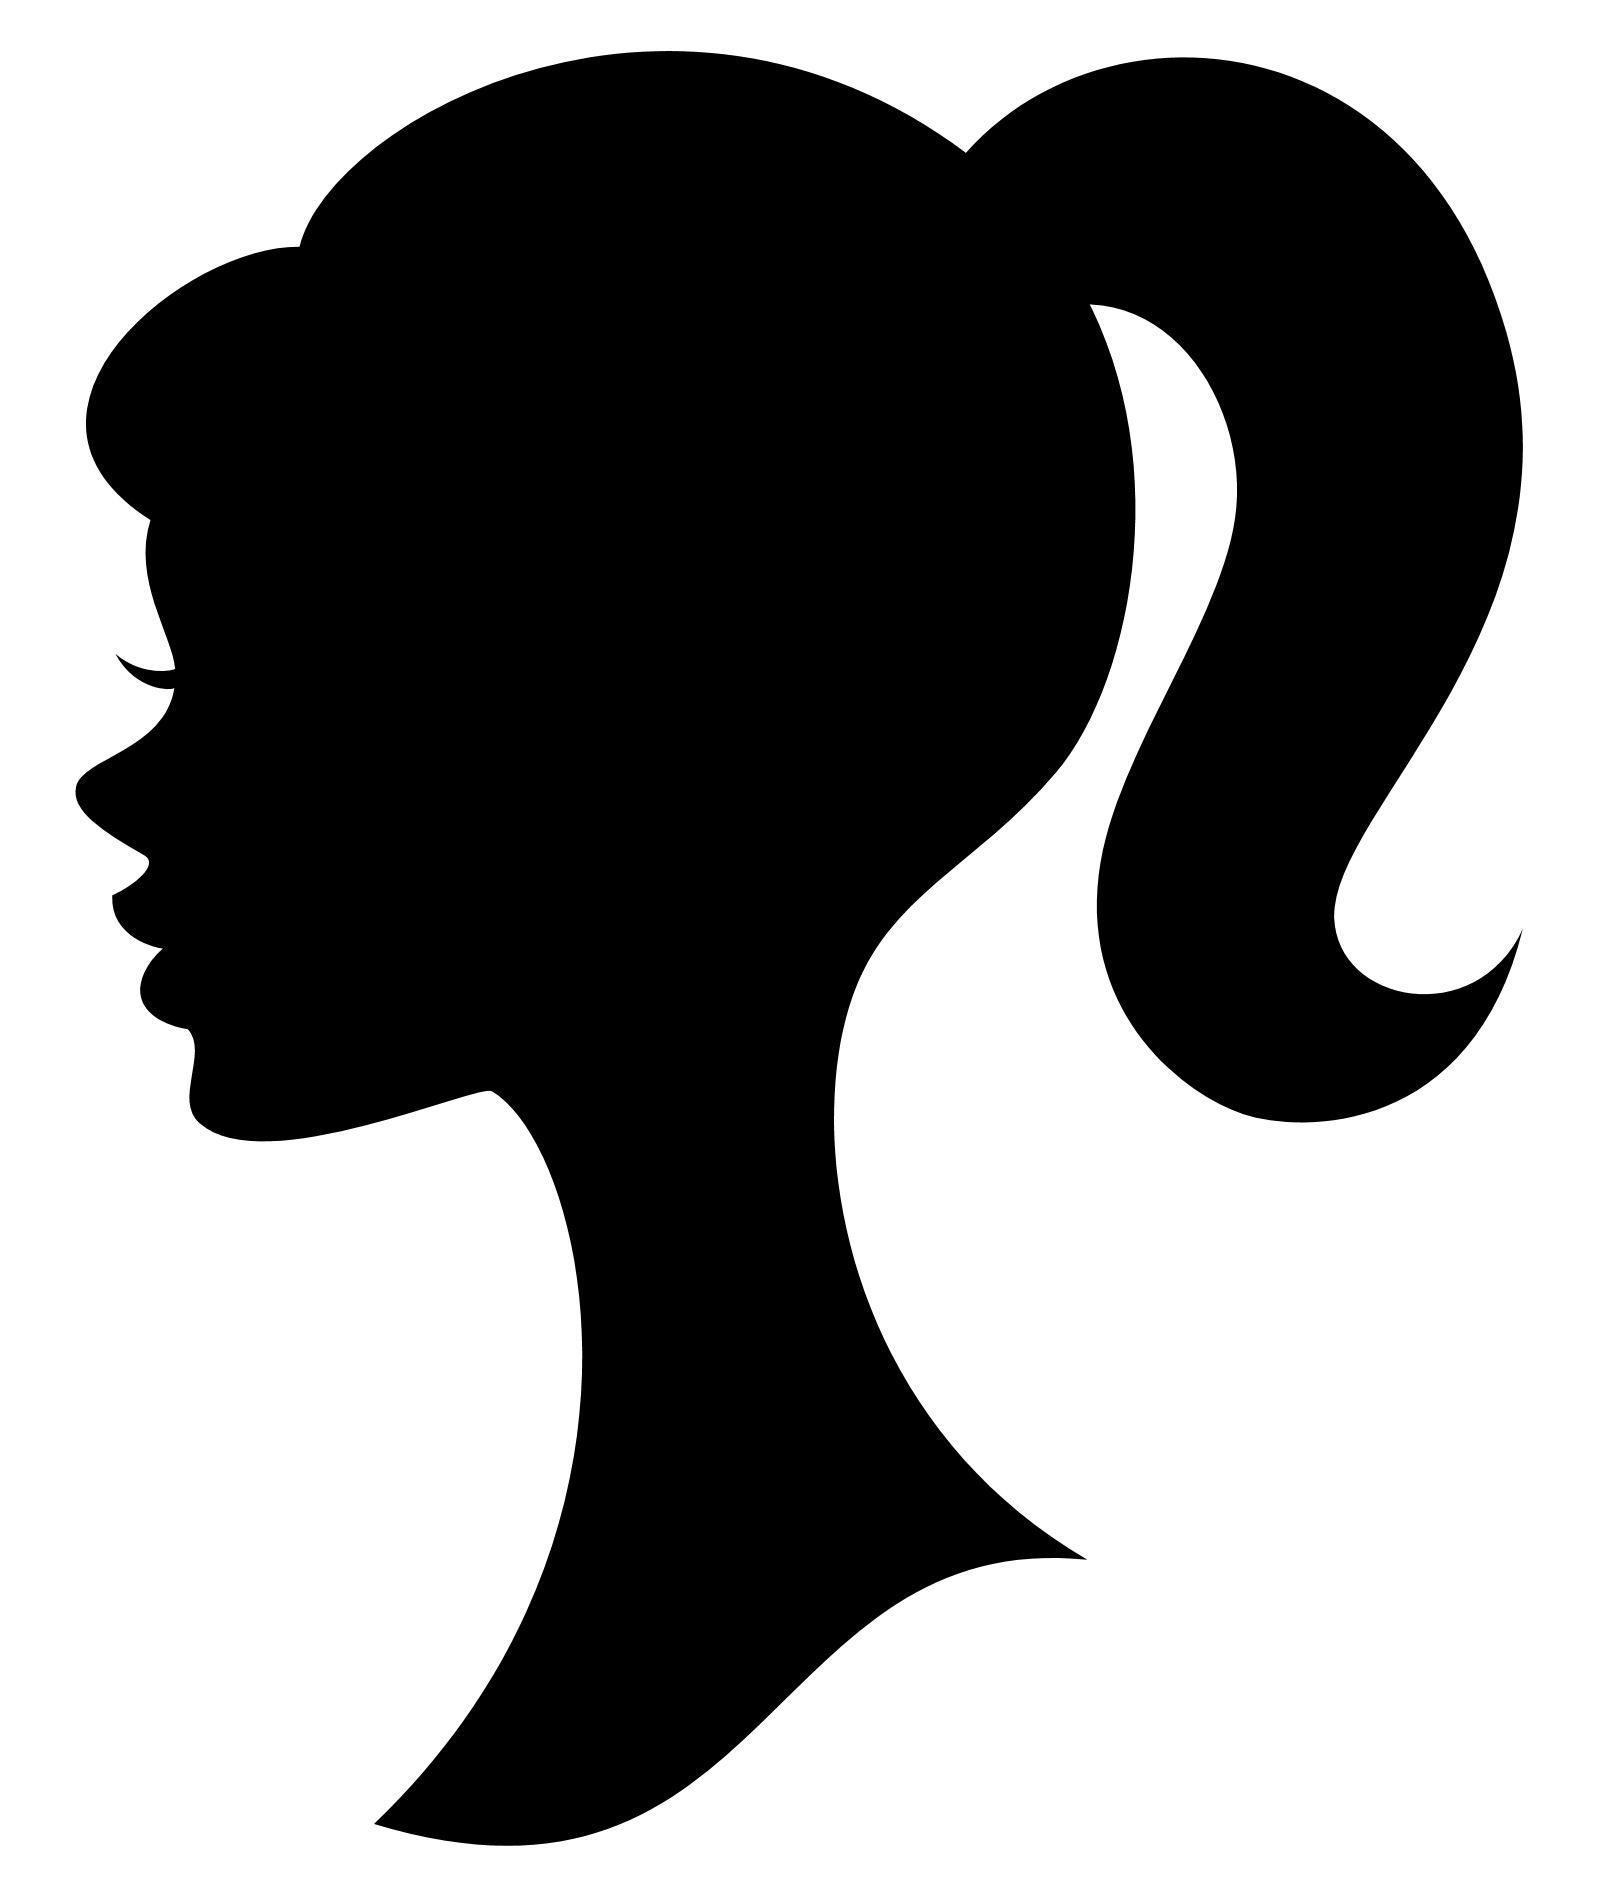 1600x1900 Phone Silhouette Png Best Of Pin By Chevonne Linton On Barbie